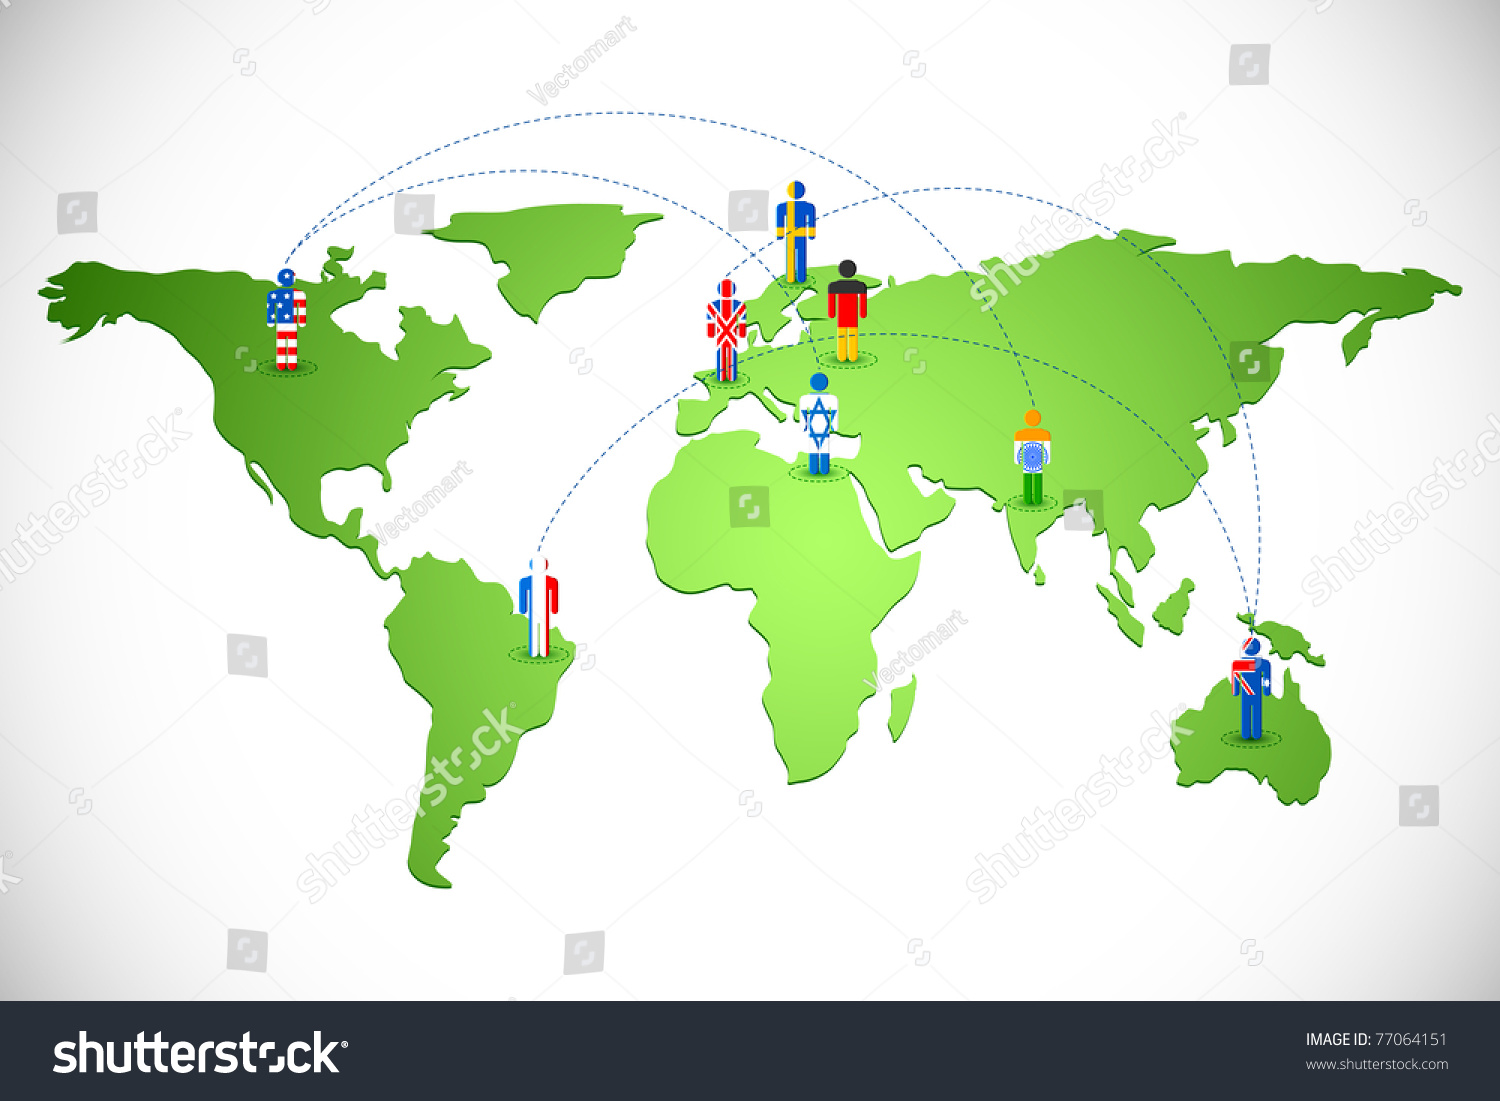 Illustration human icon different countries connected stock vector illustration human icon different countries connected stock vector 77064151 shutterstock gumiabroncs Gallery